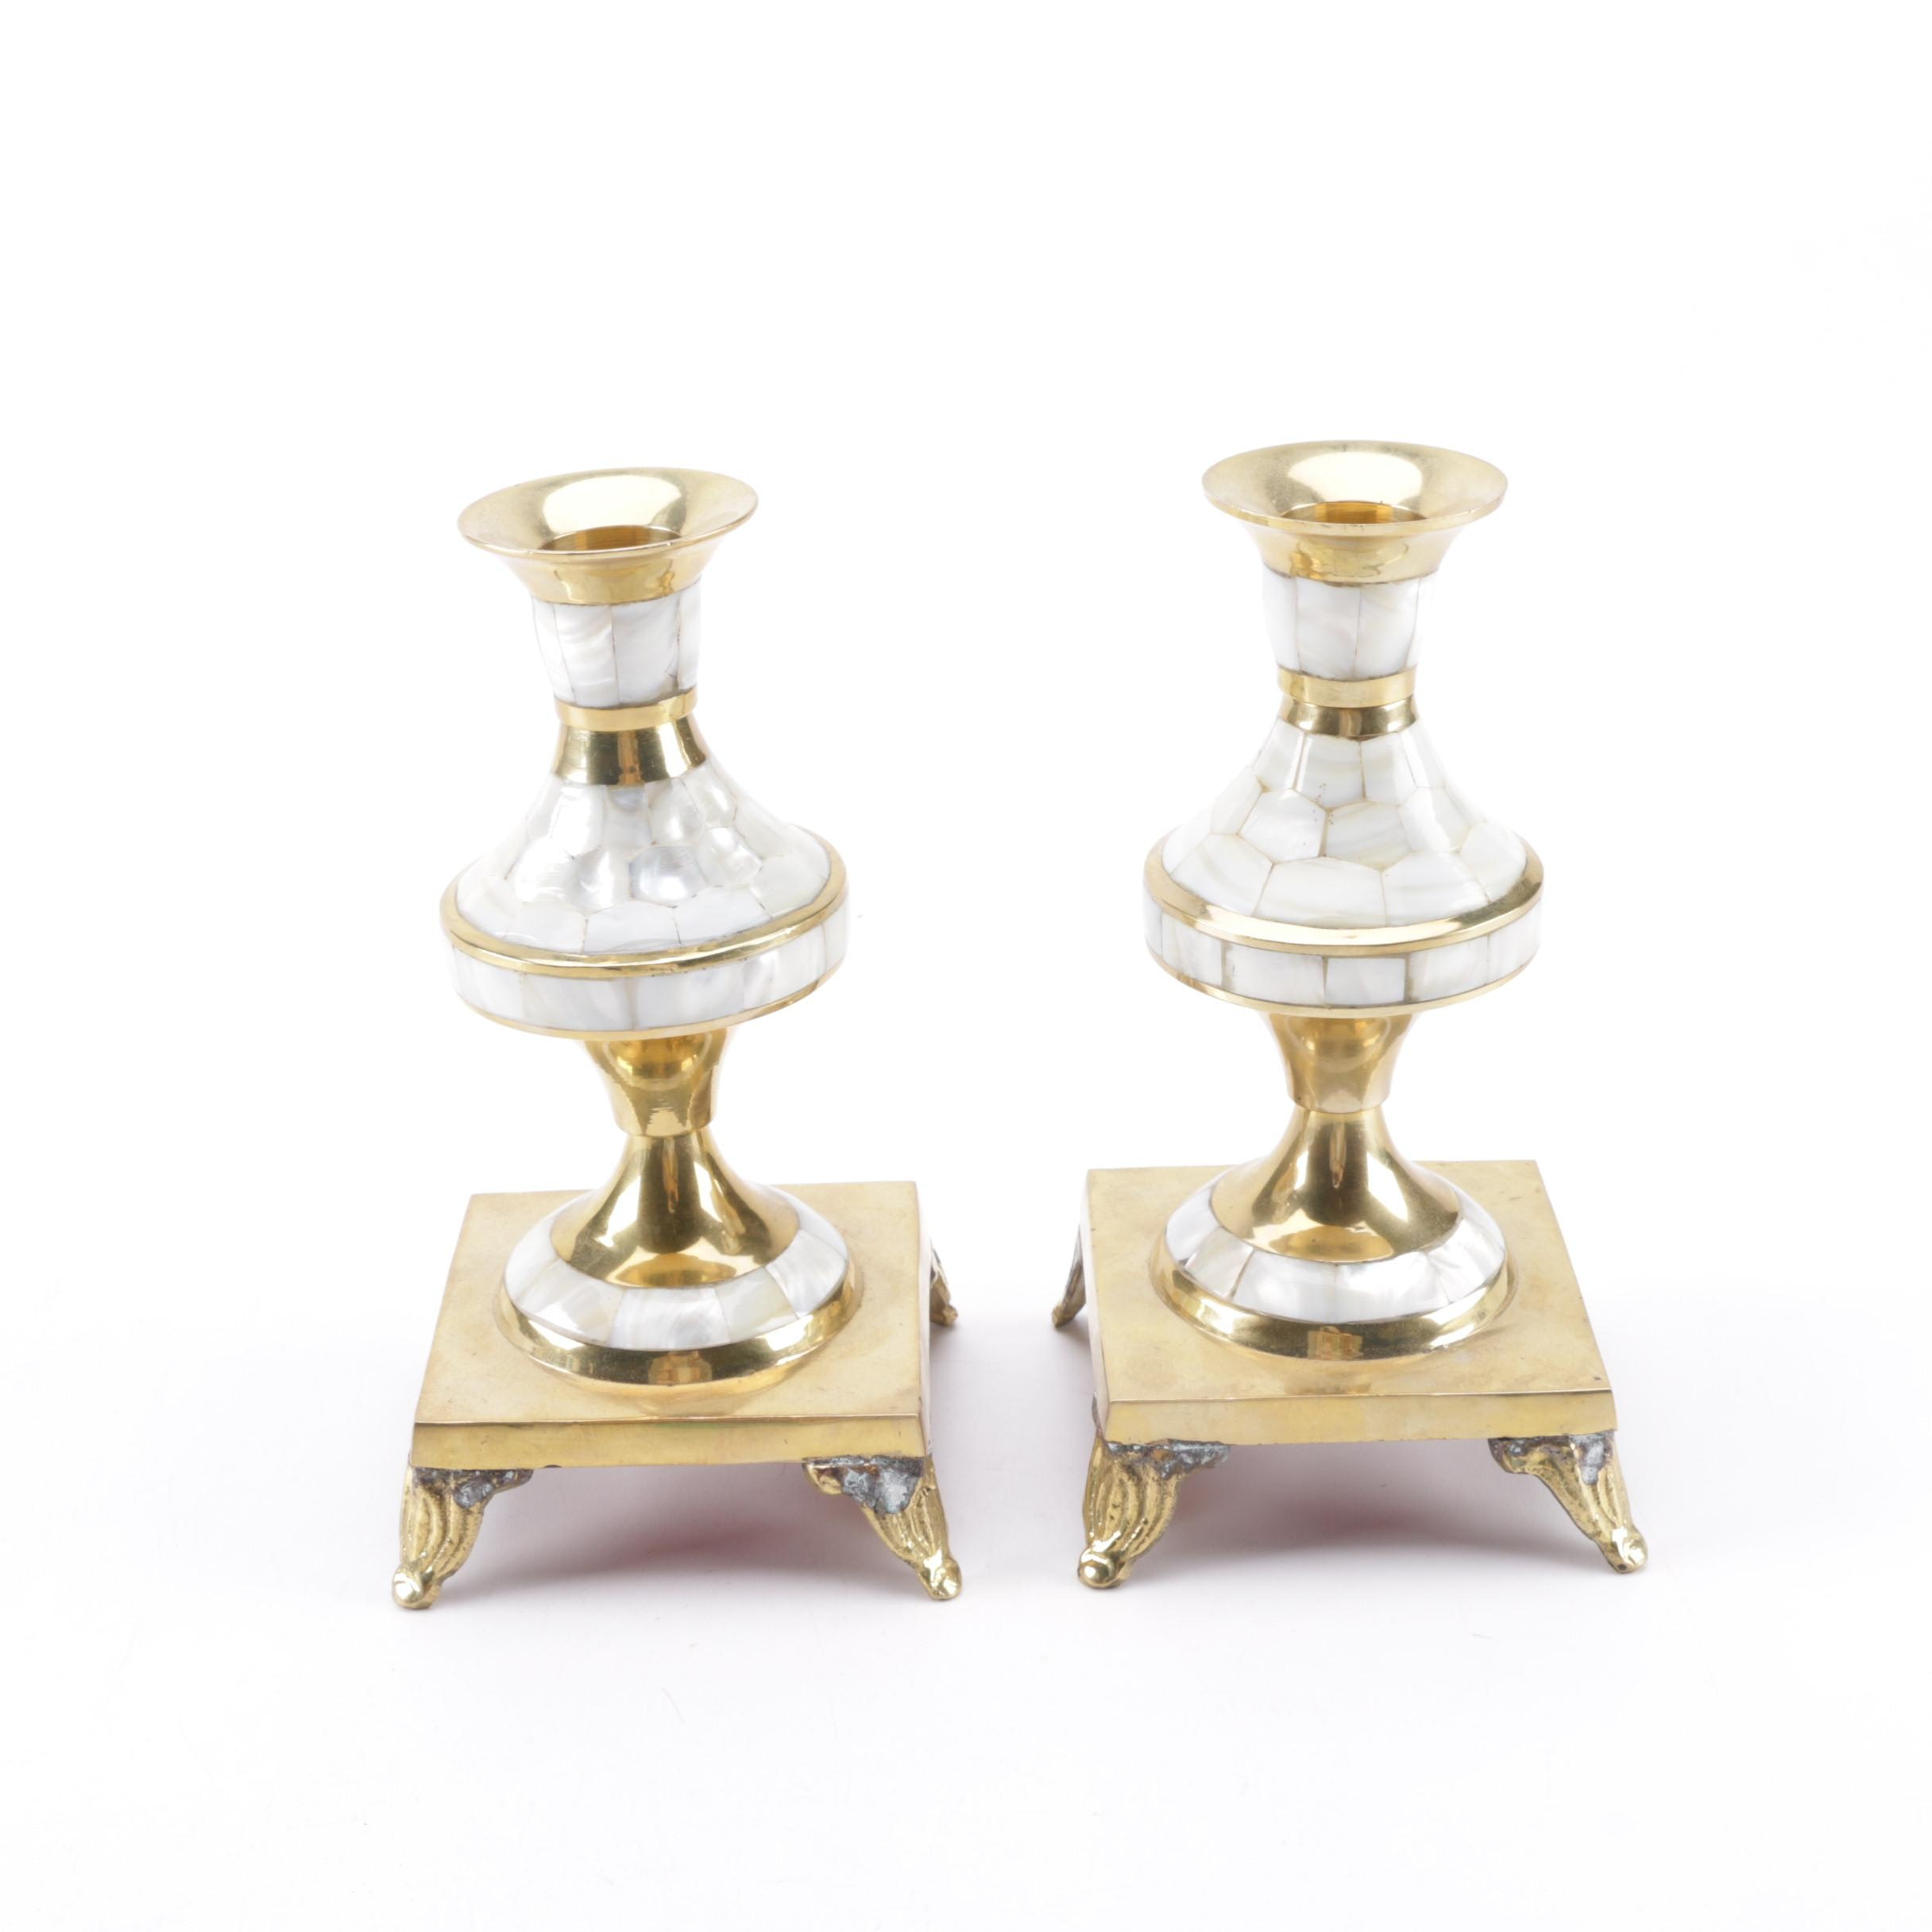 Brass and Mother of Pearl Candlesticks